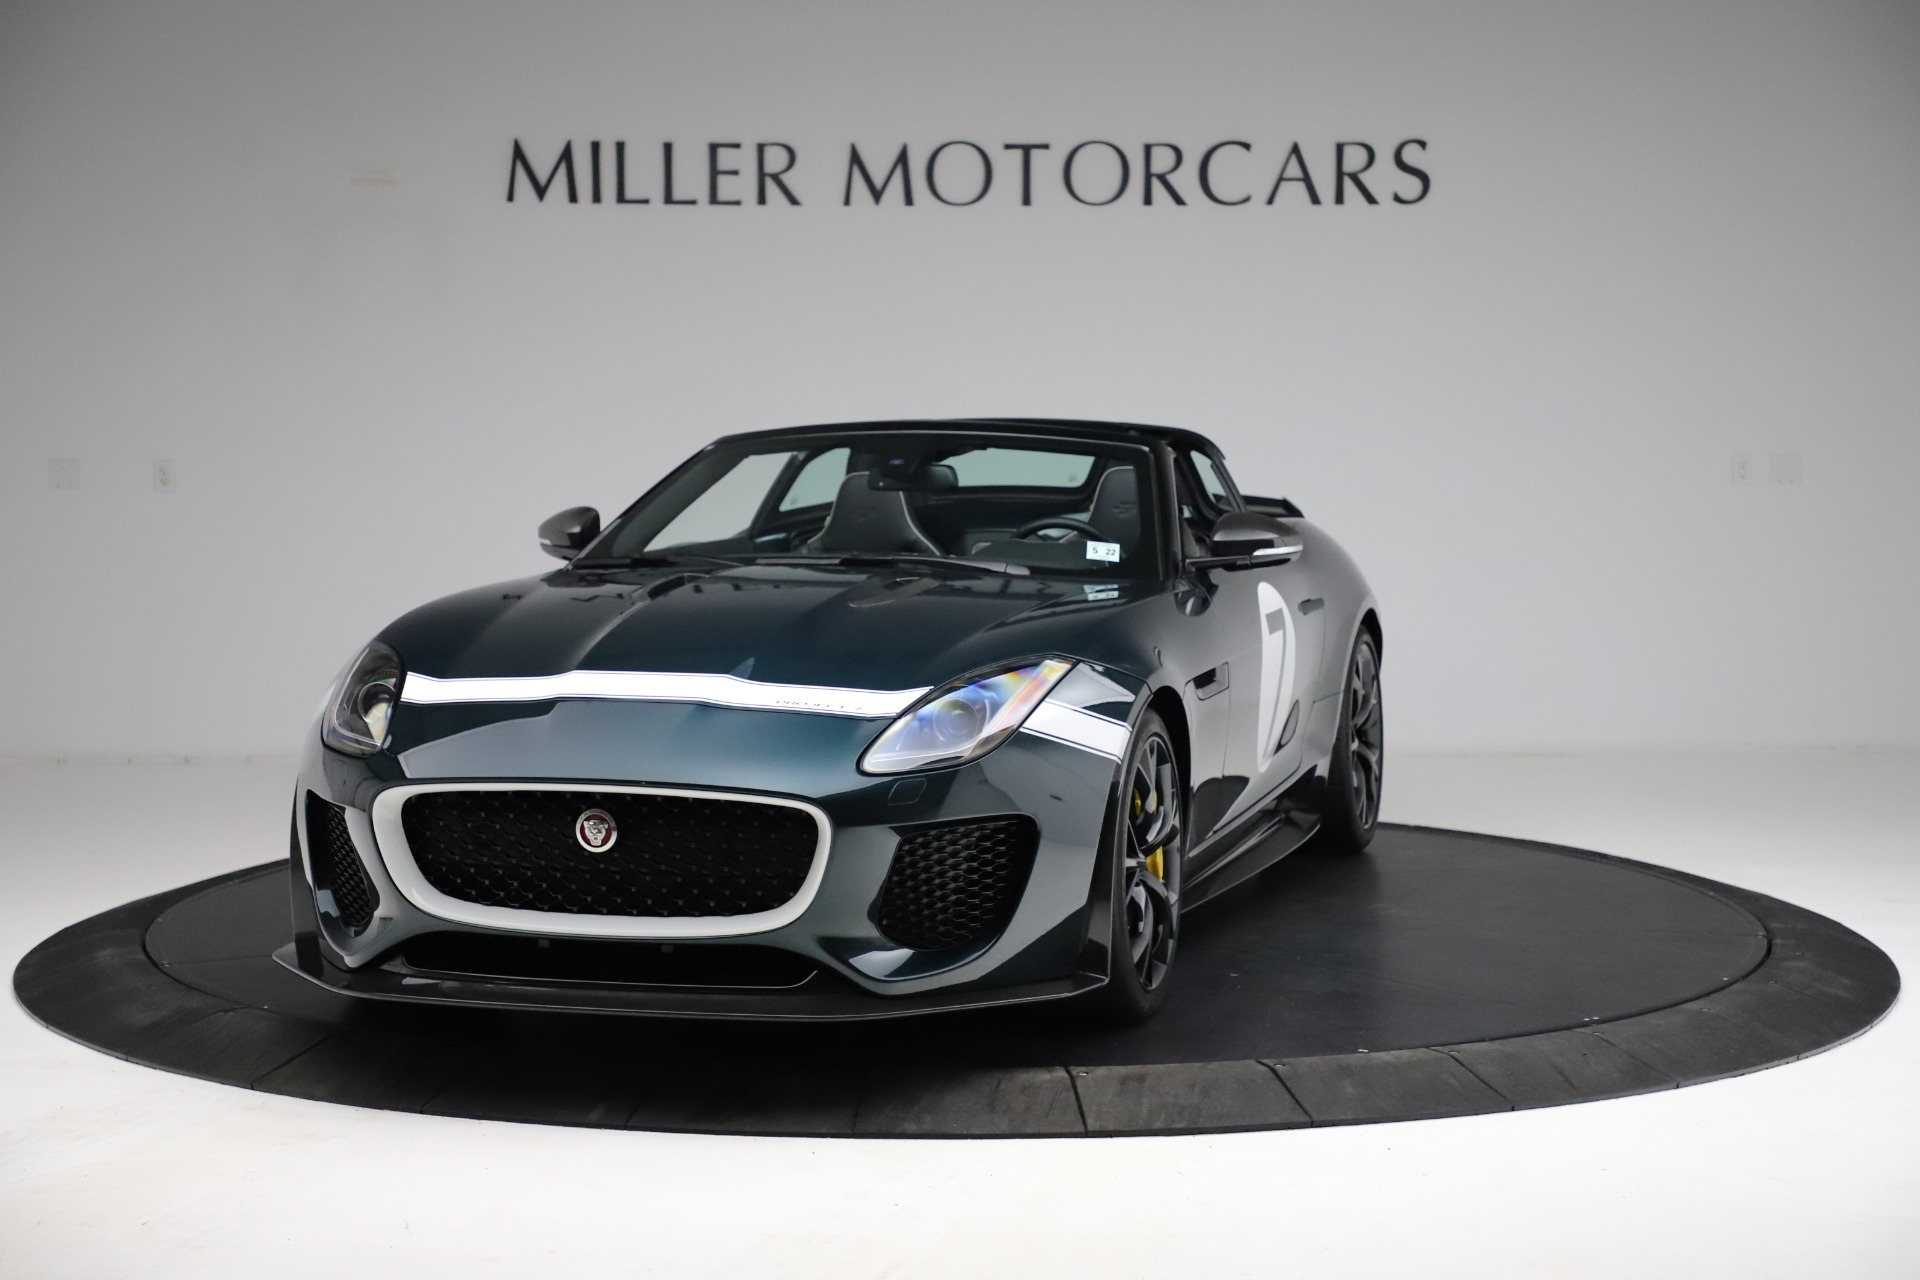 Used 2016 Jaguar F-TYPE Project 7 for sale $225,900 at Rolls-Royce Motor Cars Greenwich in Greenwich CT 06830 1